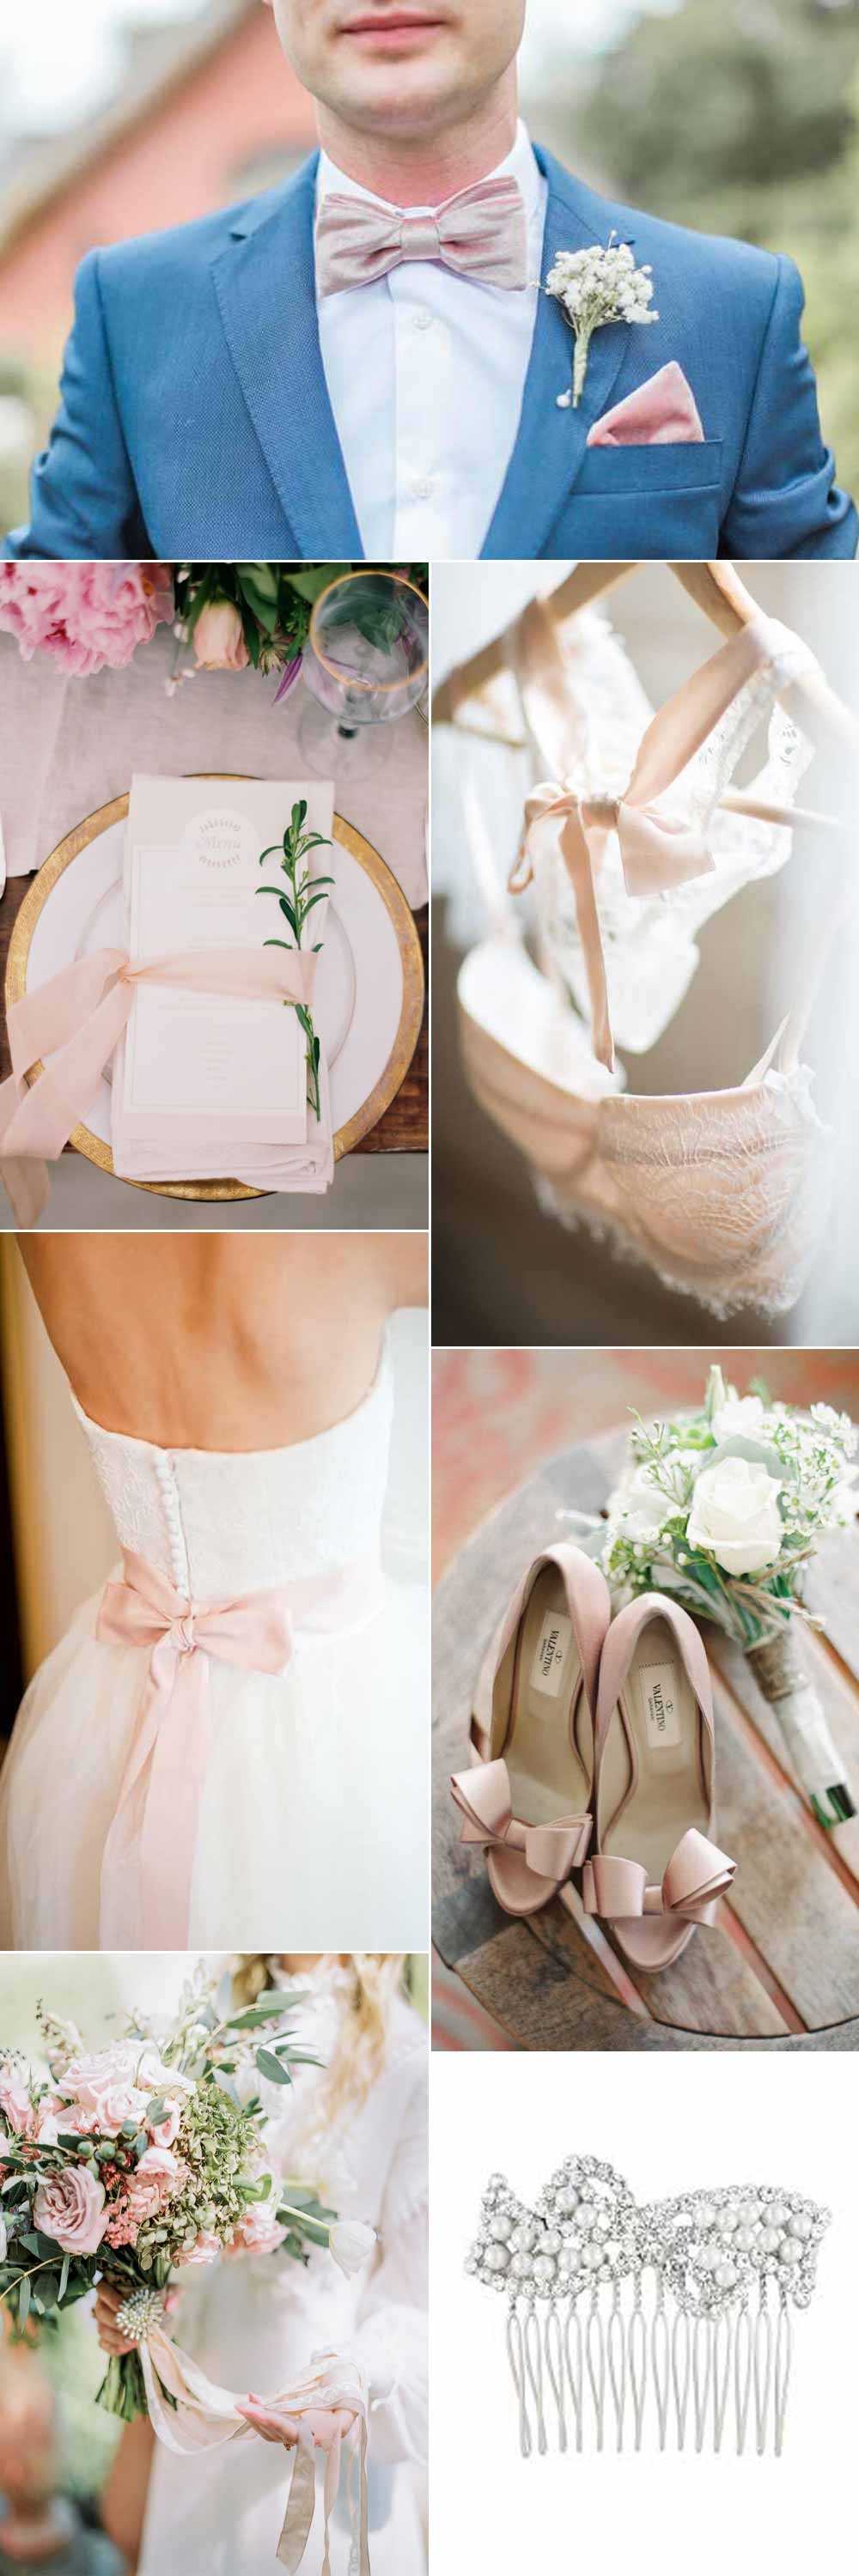 Blush and bow wedding inspiration